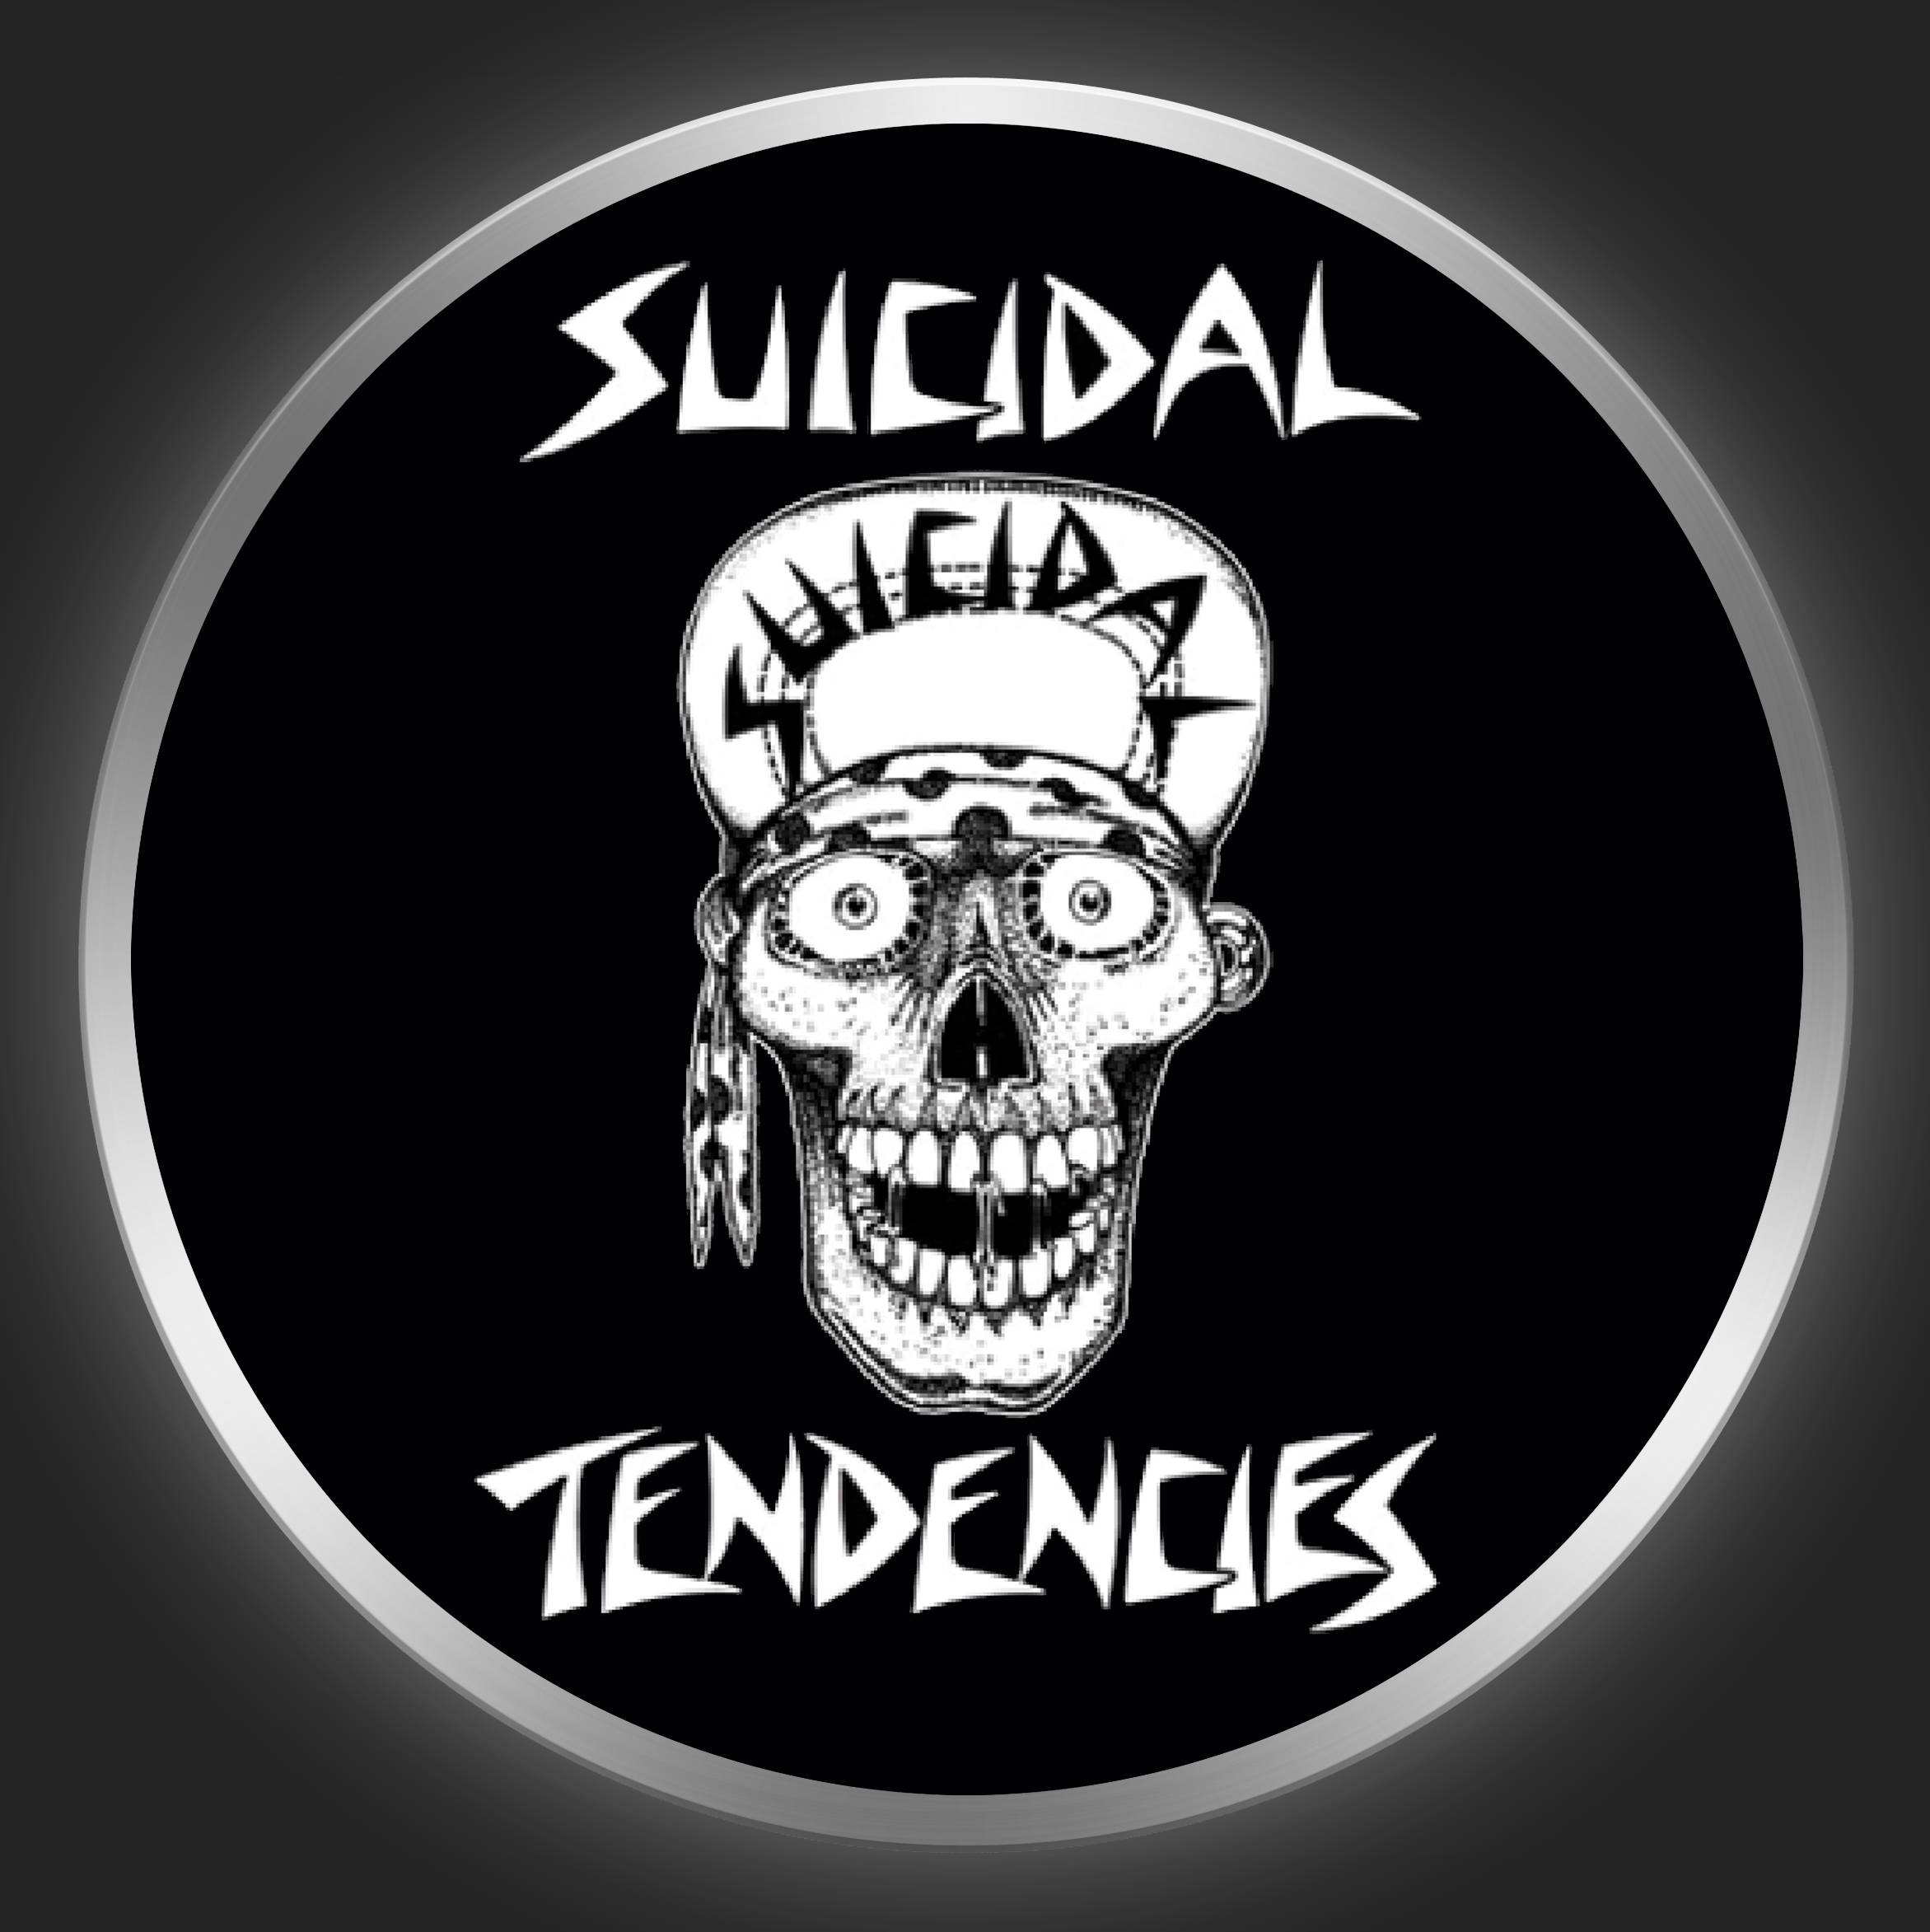 SUICIDAL TENDENCIES.